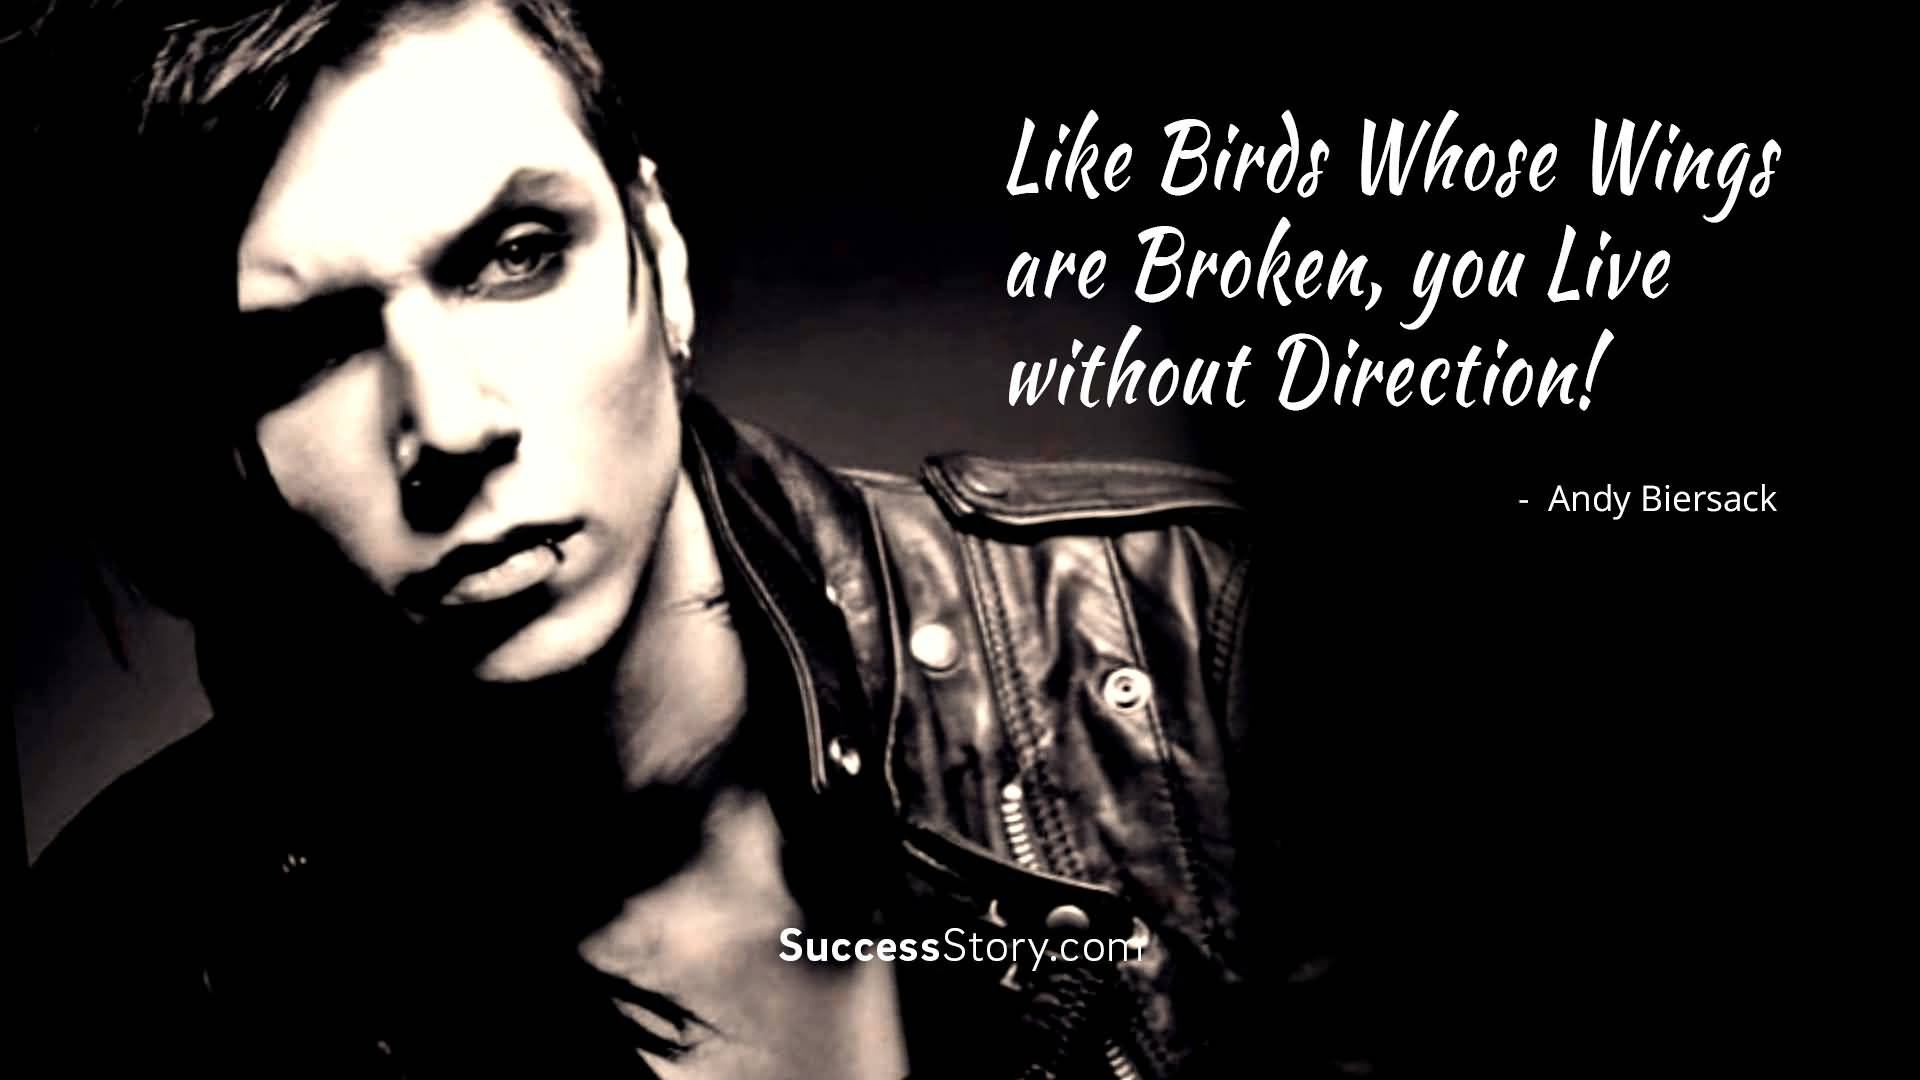 andy biersack quotes - 1280×720